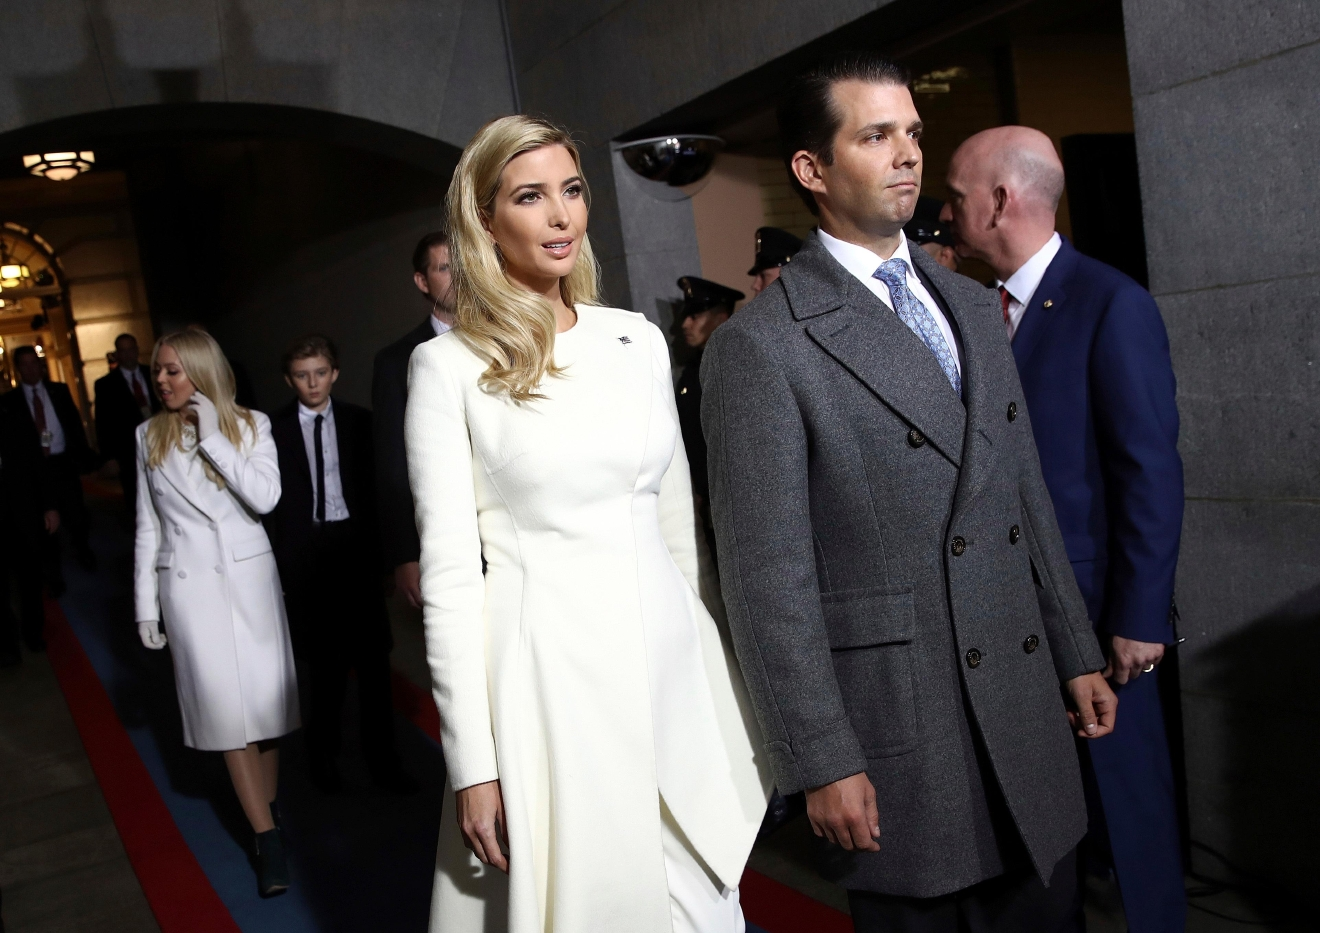 Ivanka Trump and Donald Trump, Jr. arrive on the West Front of the U.S. Capitol on Friday, Jan. 20, 2017, in Washington, for the inauguration ceremony of Donald J. Trump as the 45th president of the United States. (Win McNamee/Pool Photo via AP)